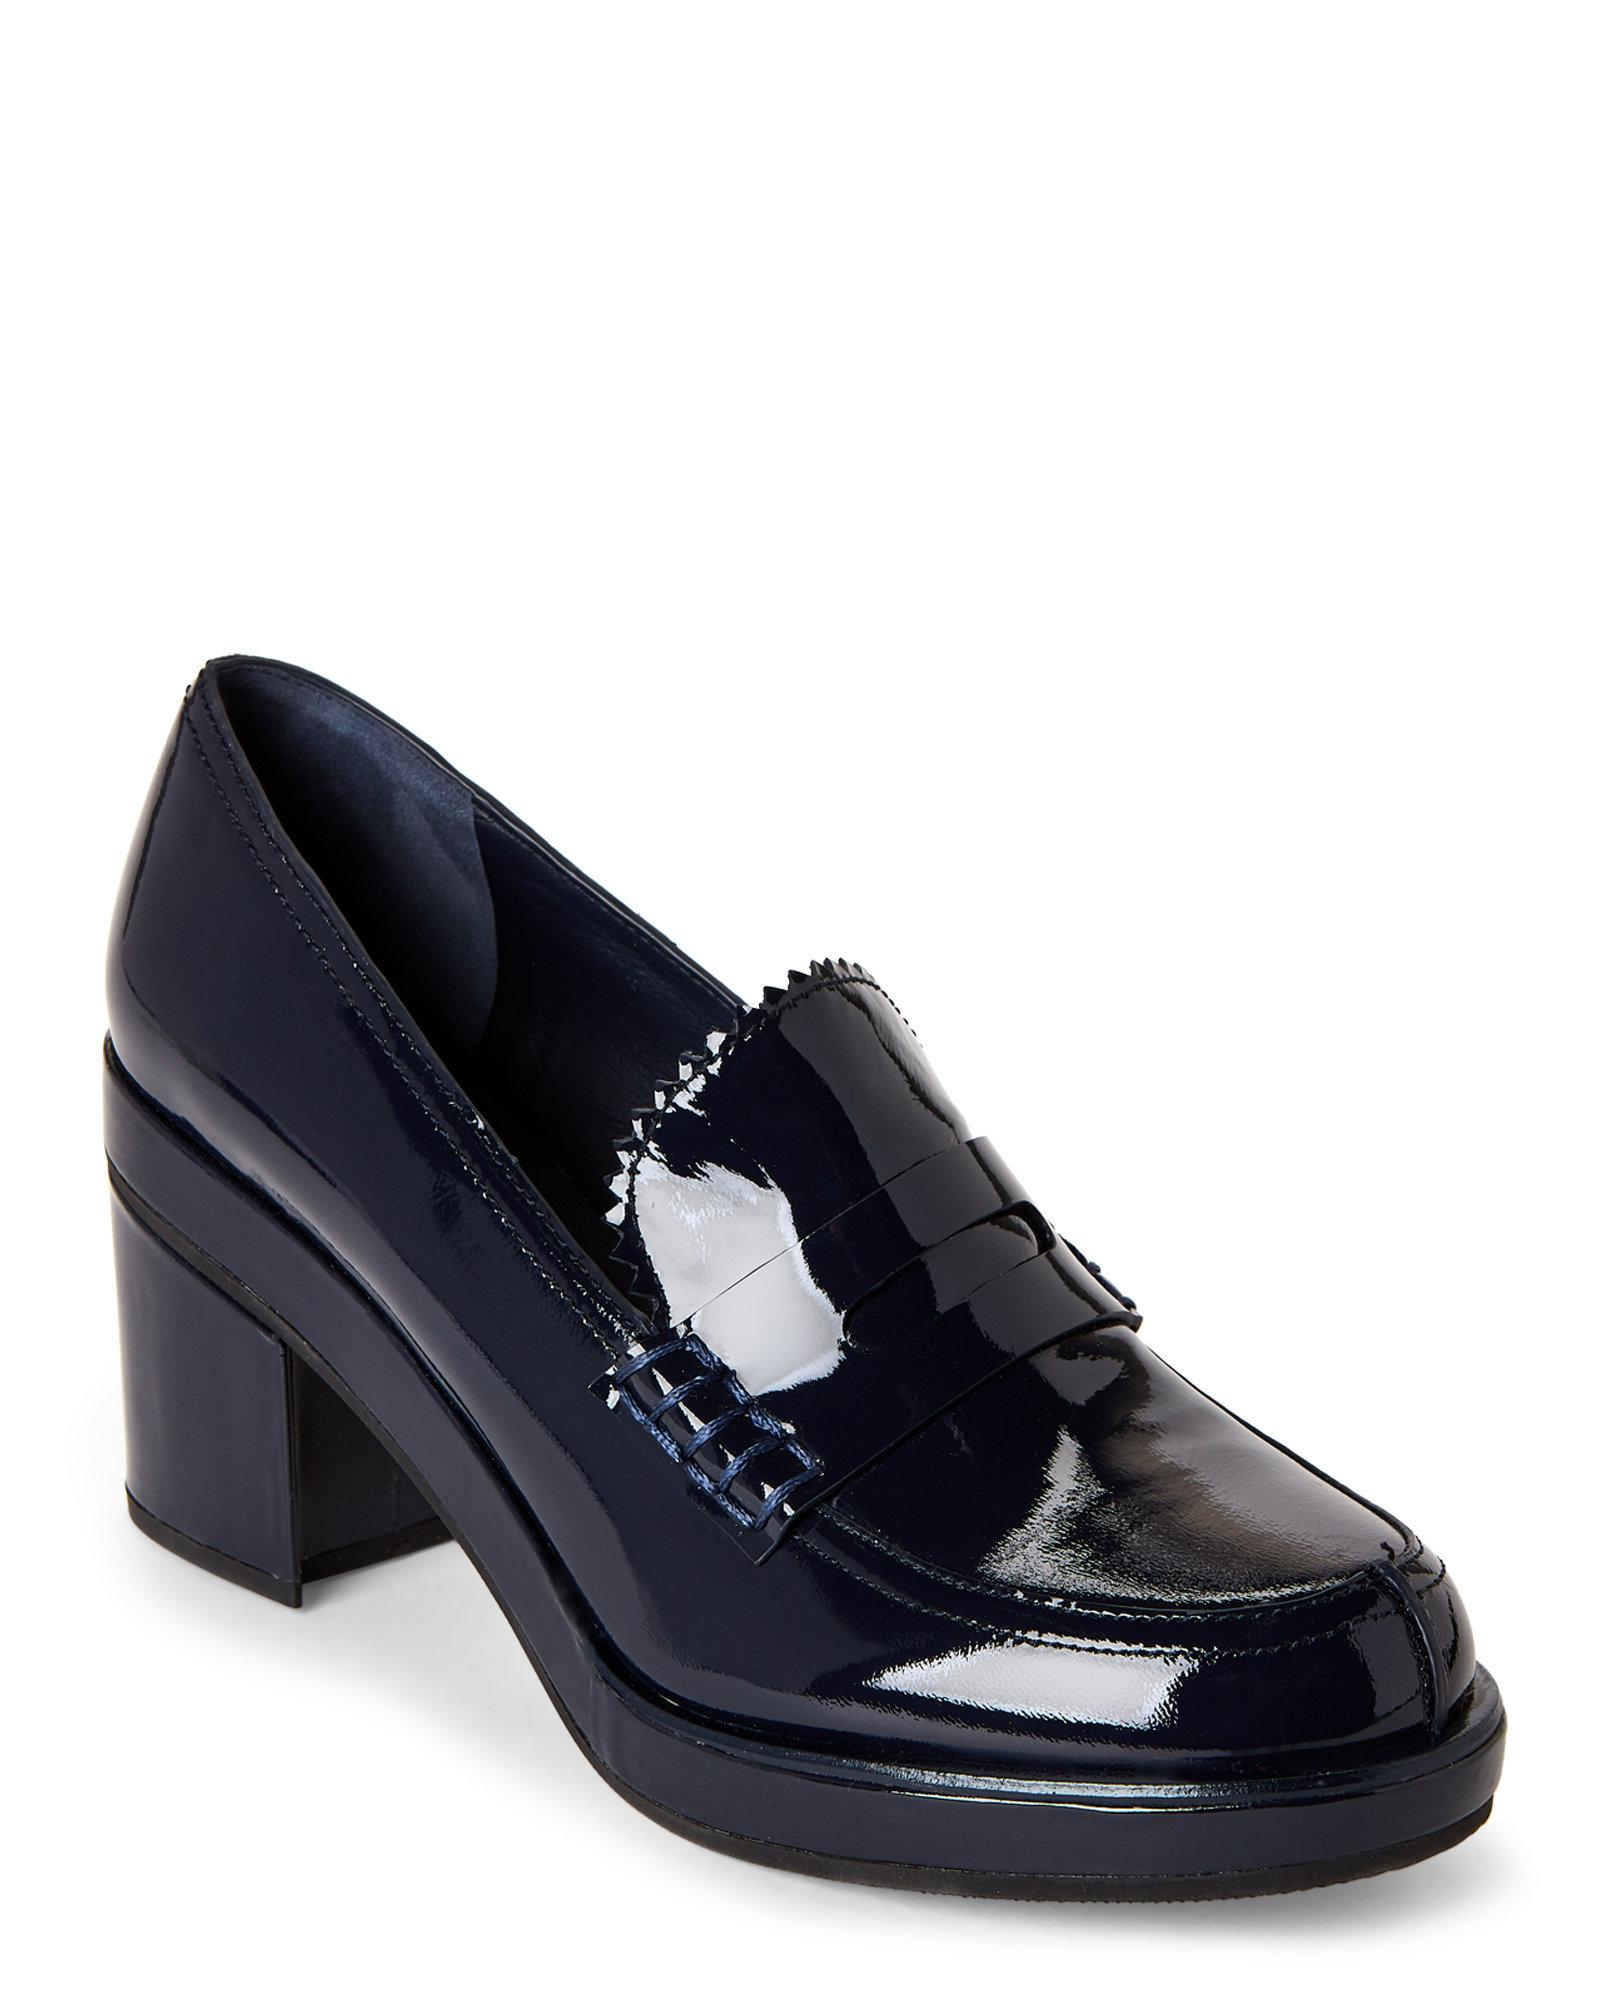 Jil Sander Leather Penny Loafers